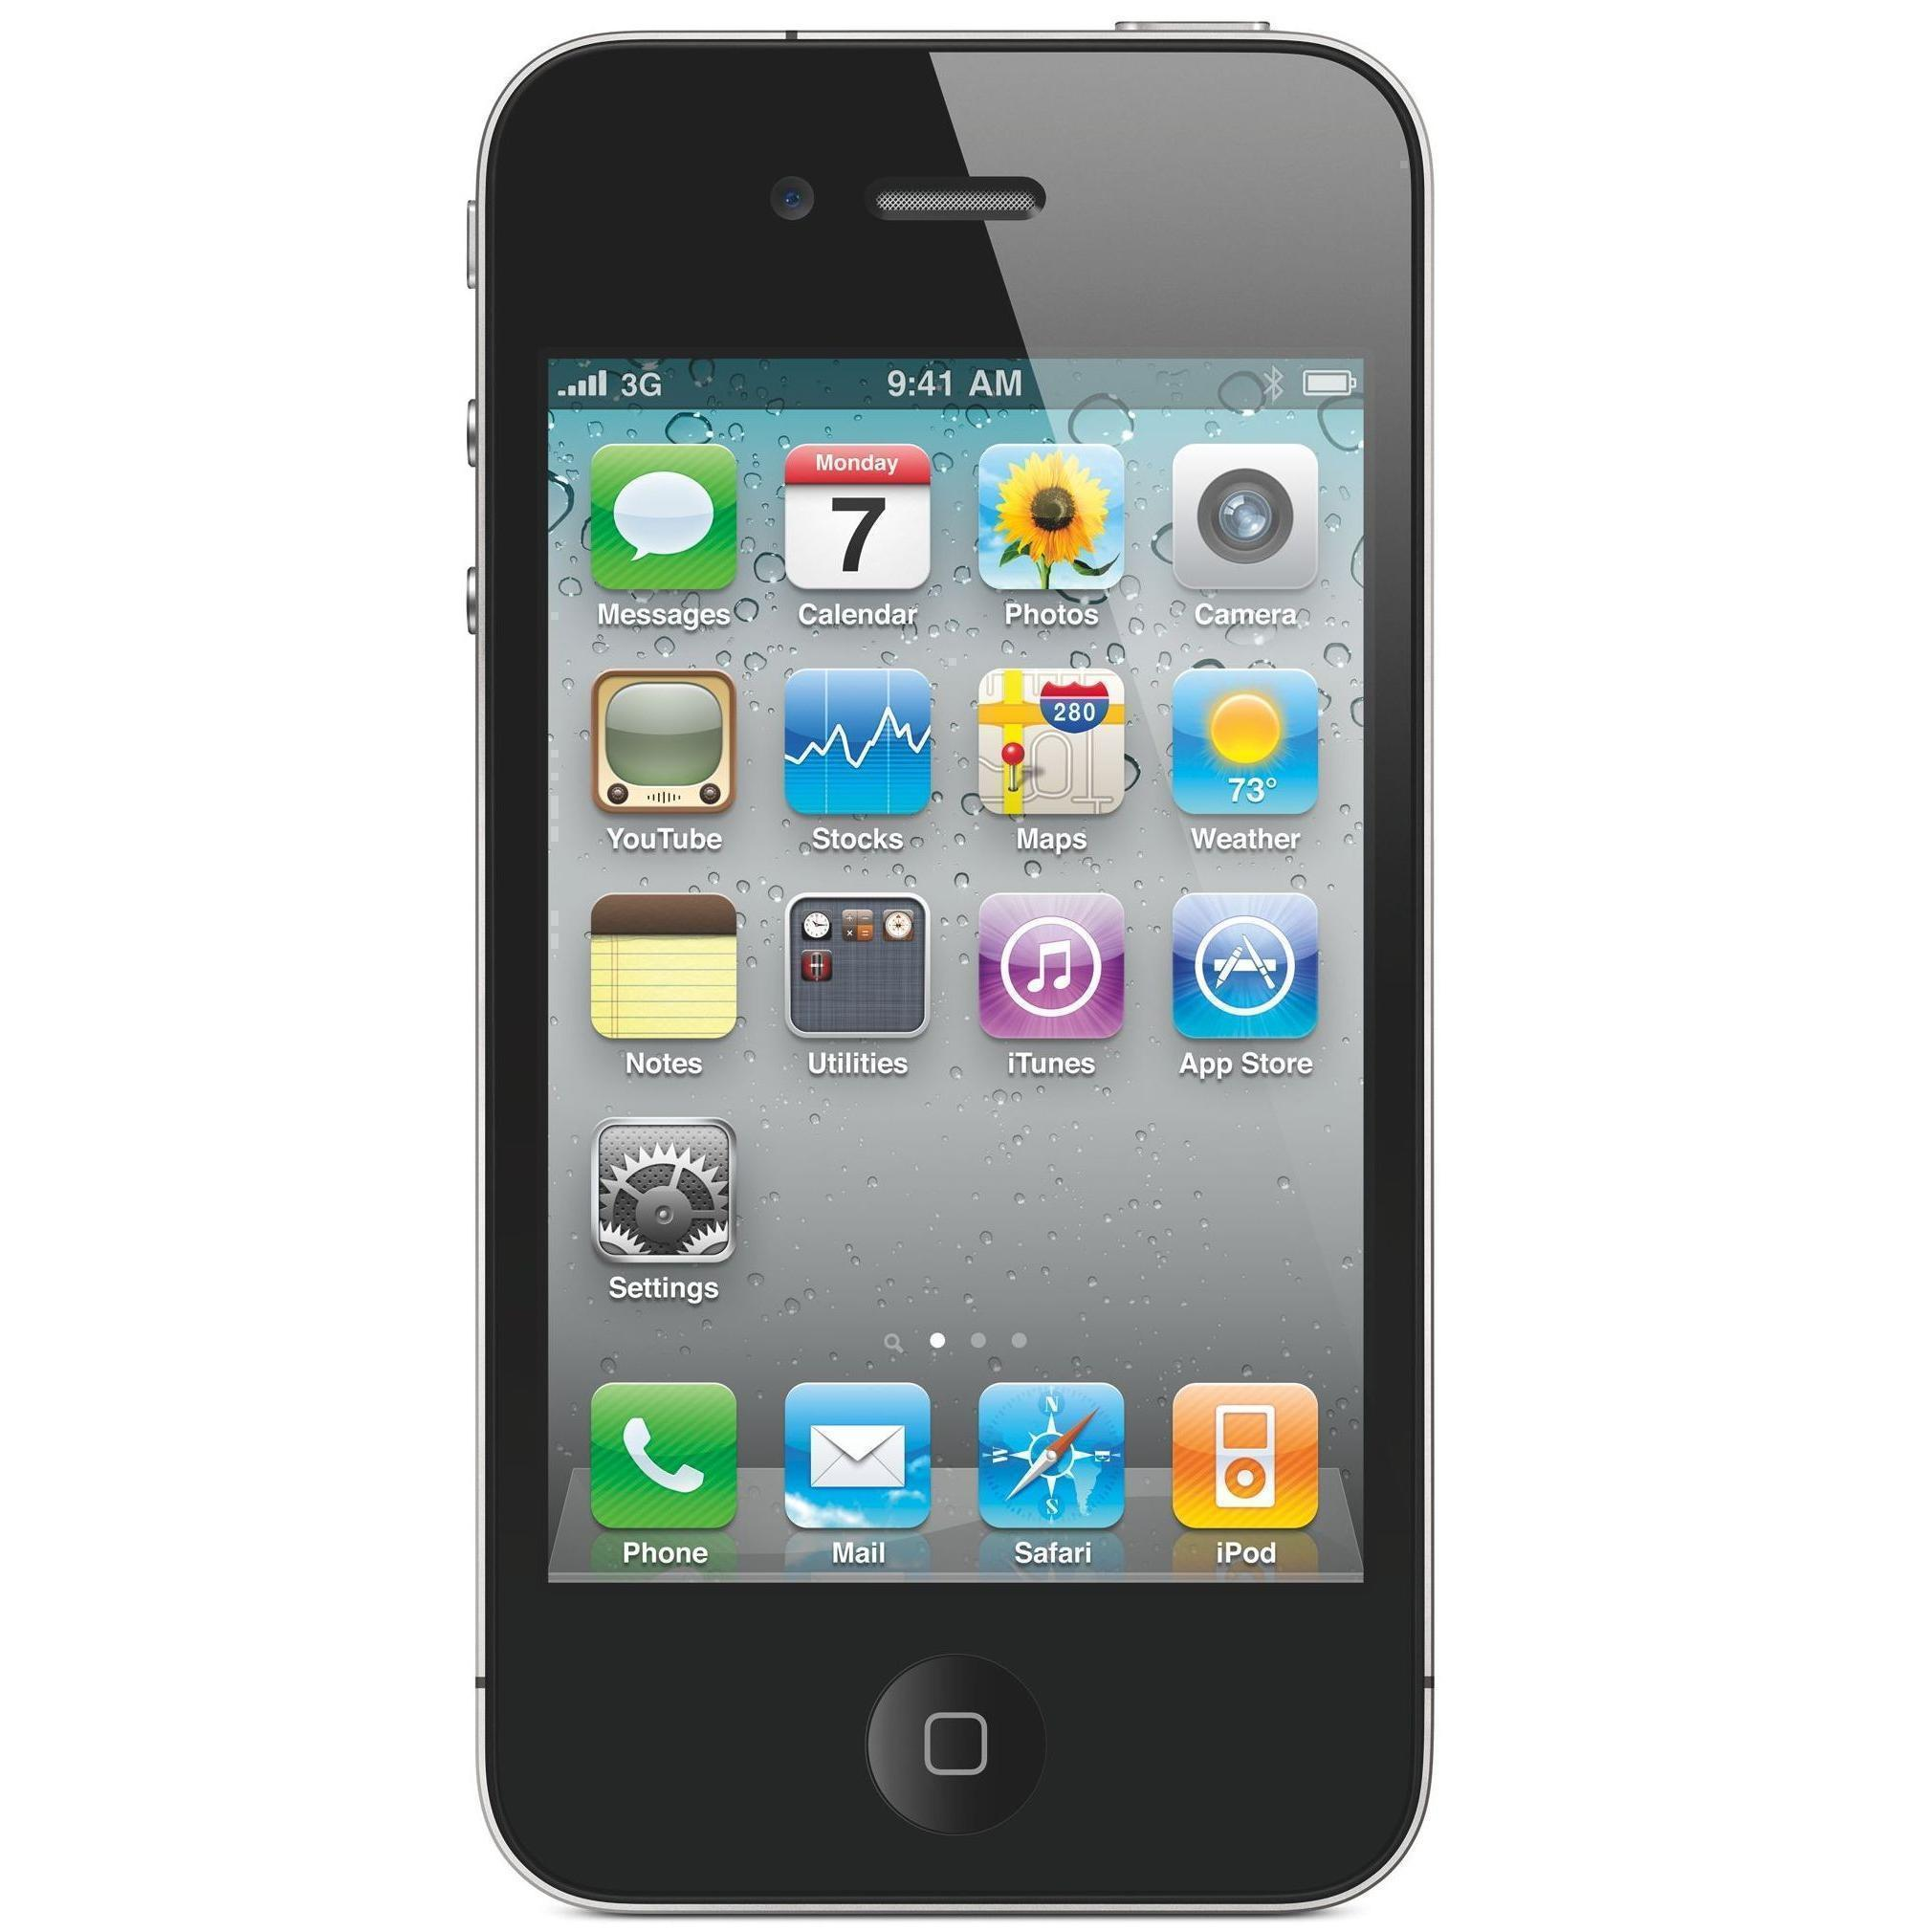 iPhone 4S 16 Gb - Negro - Libre